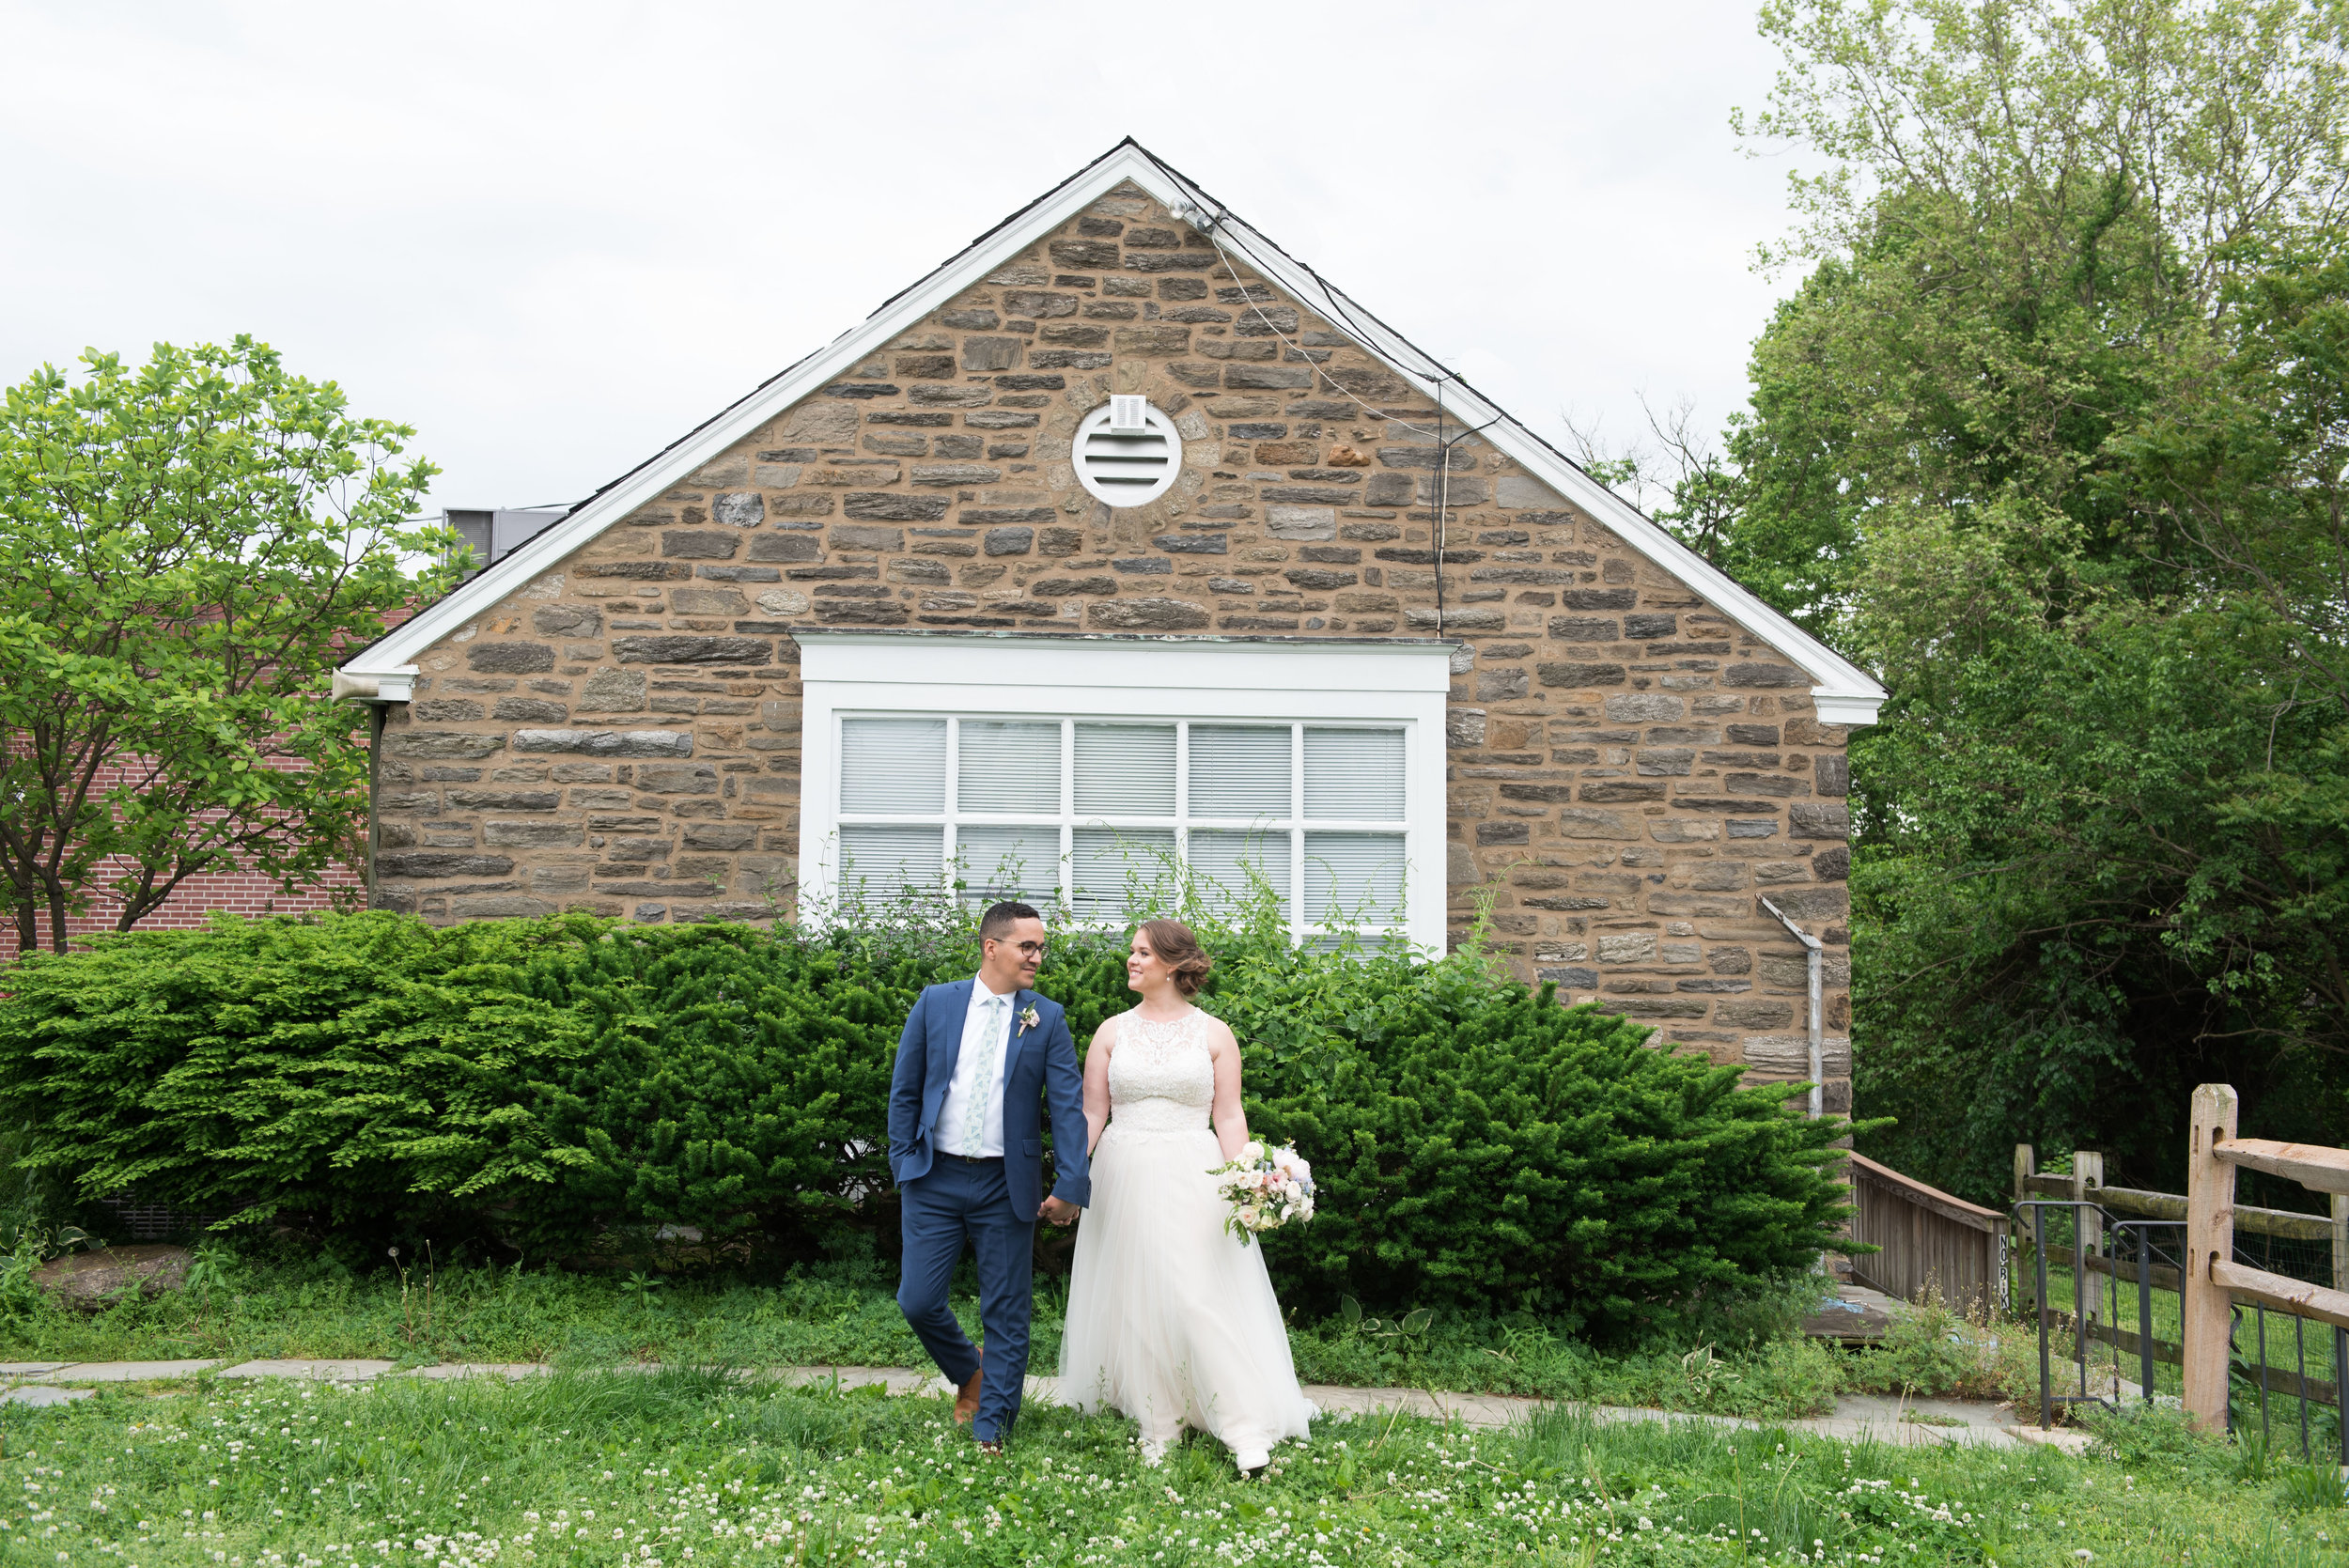 MANAYUNK BREWING COMPANY BRIDE AND GROOM PORTRAITS